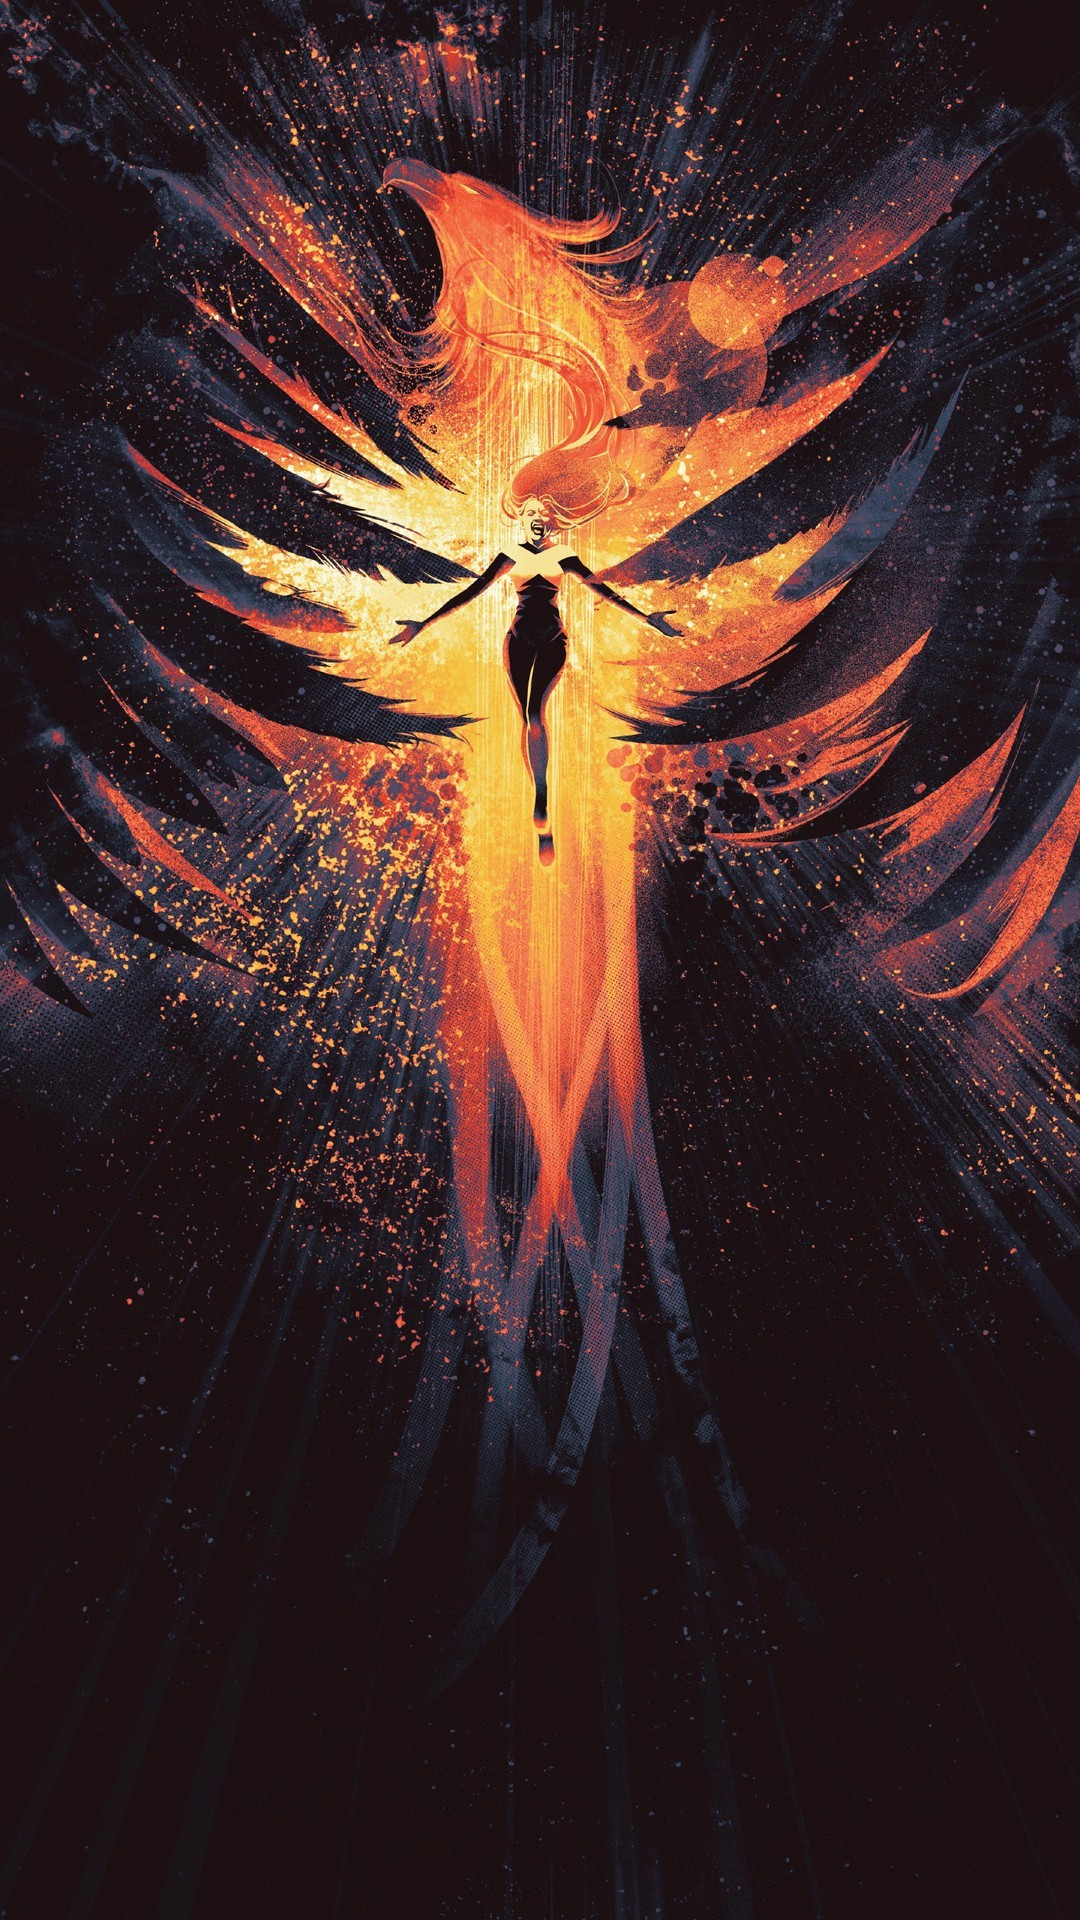 Dark Phoenix 2019 Android Wallpaper   2019 Android Wallpapers 1080x1920